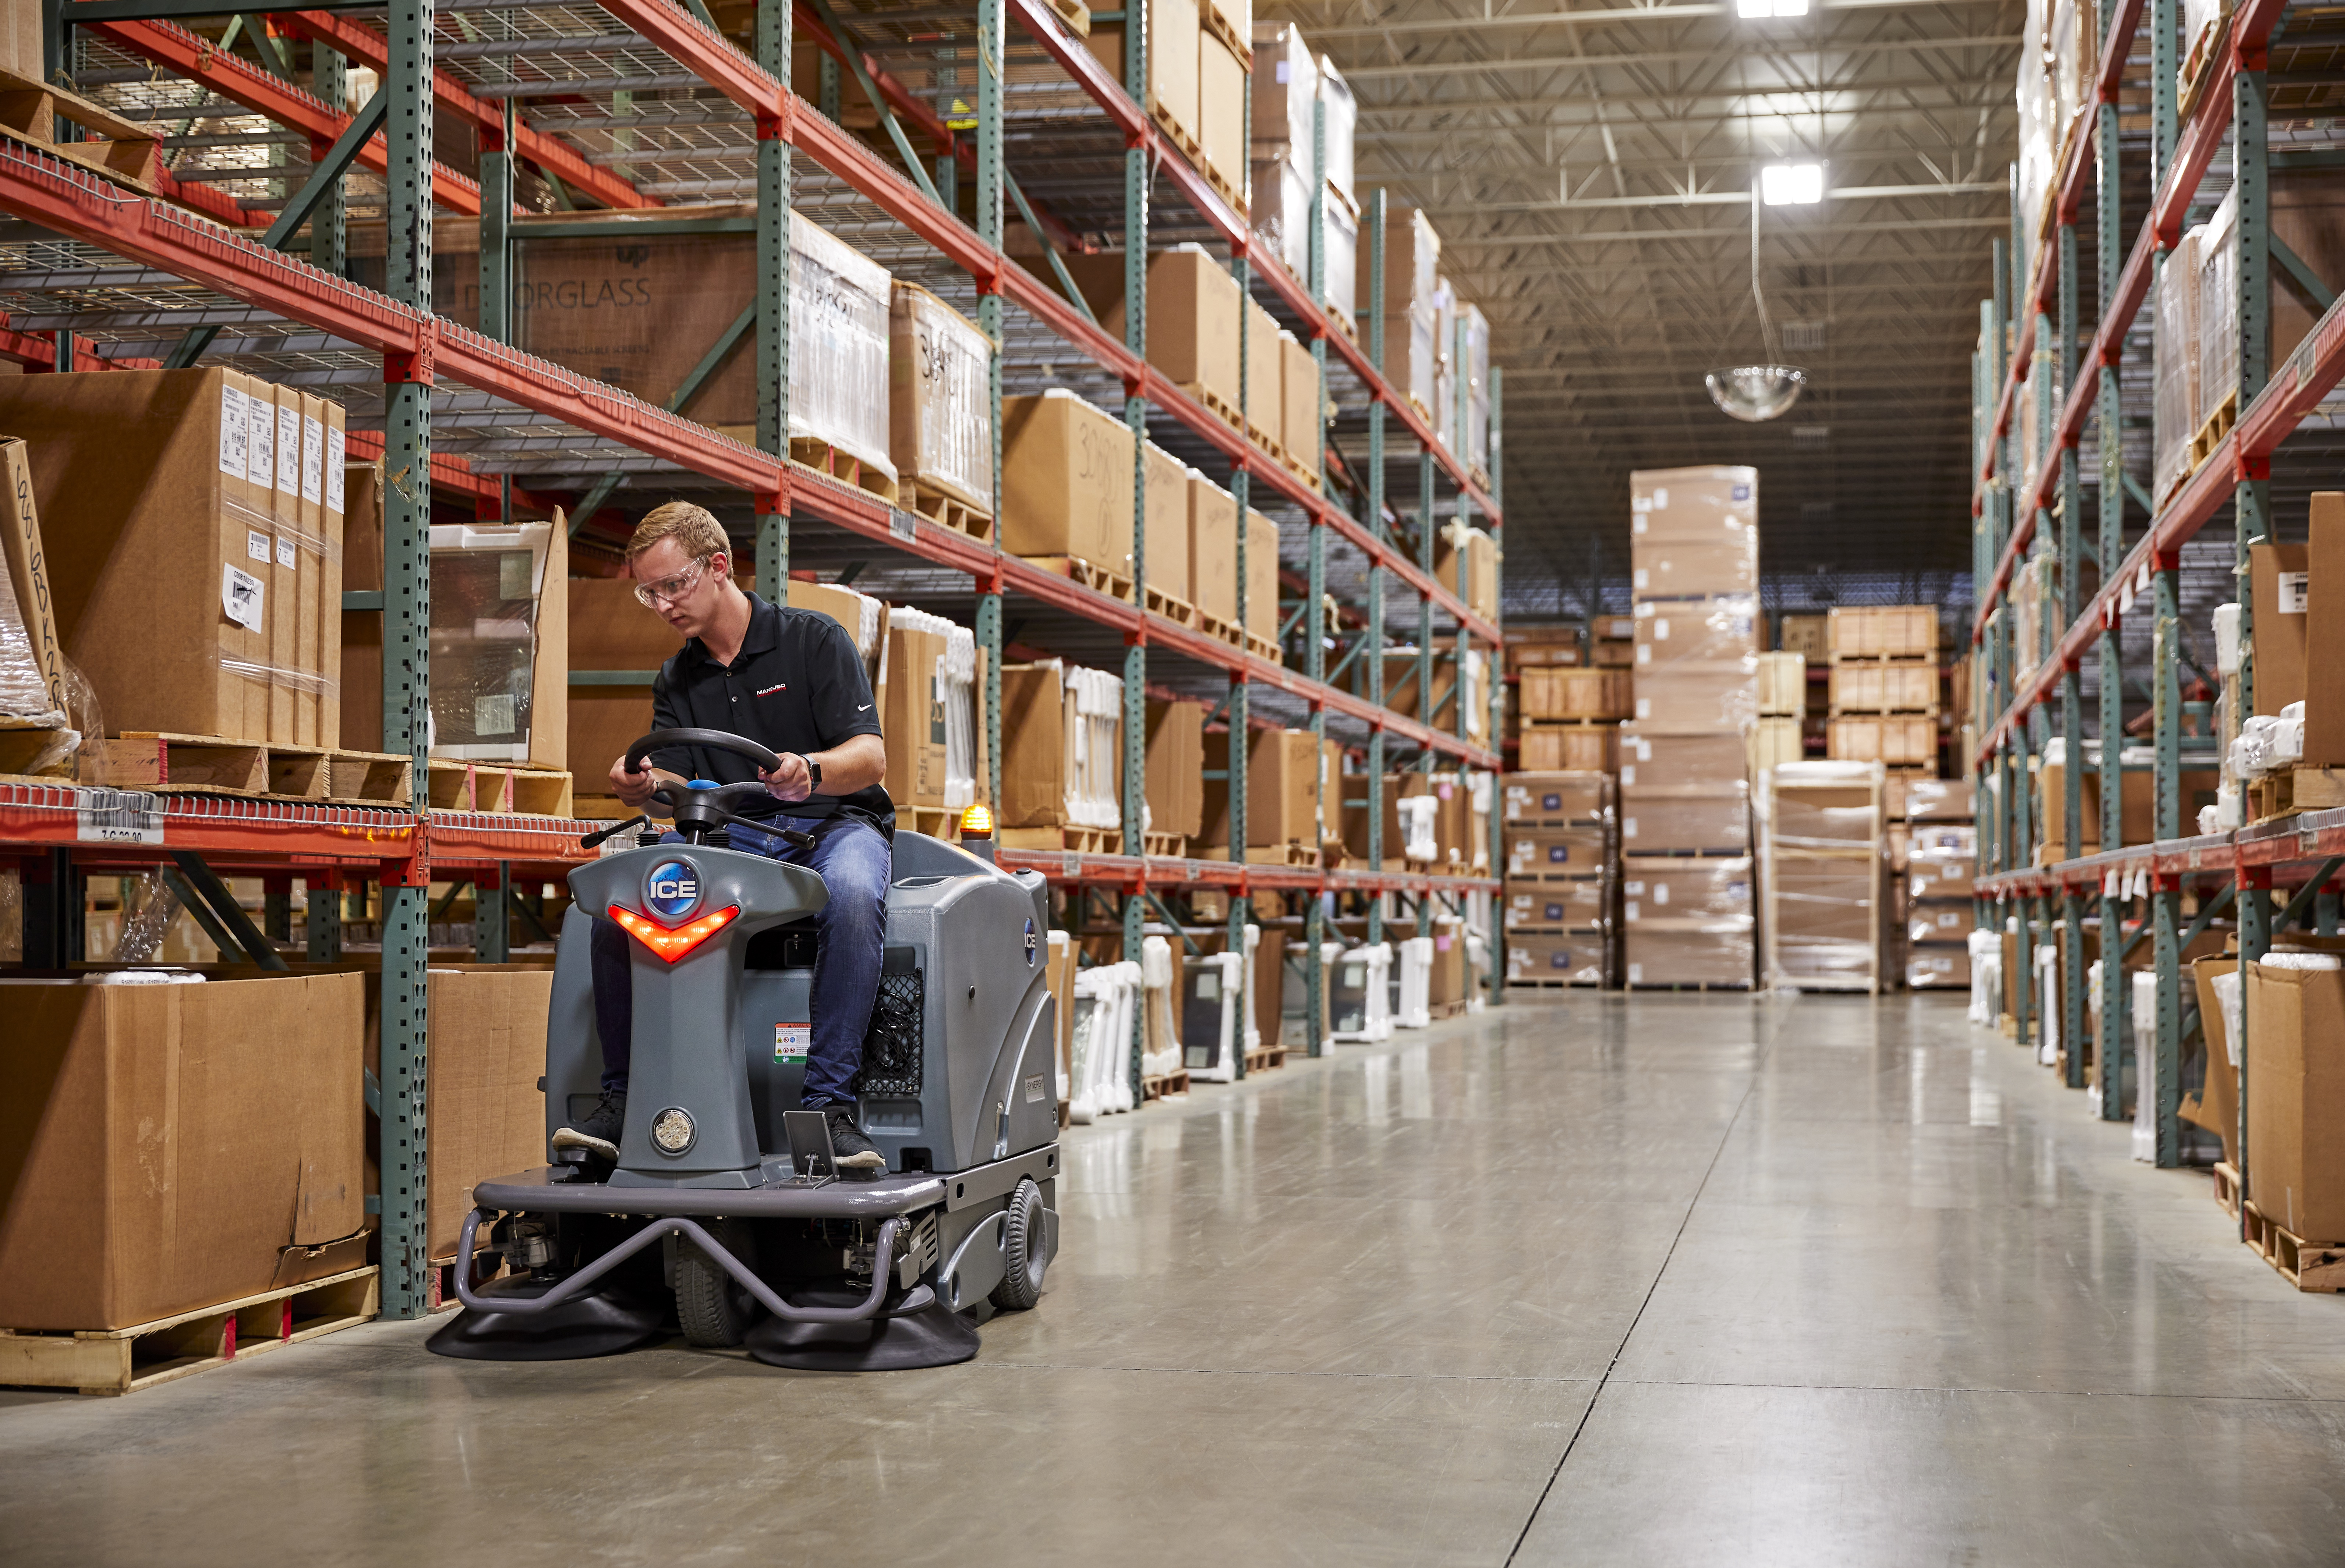 Machine operator riding the is1100L sweeper in a warehouse